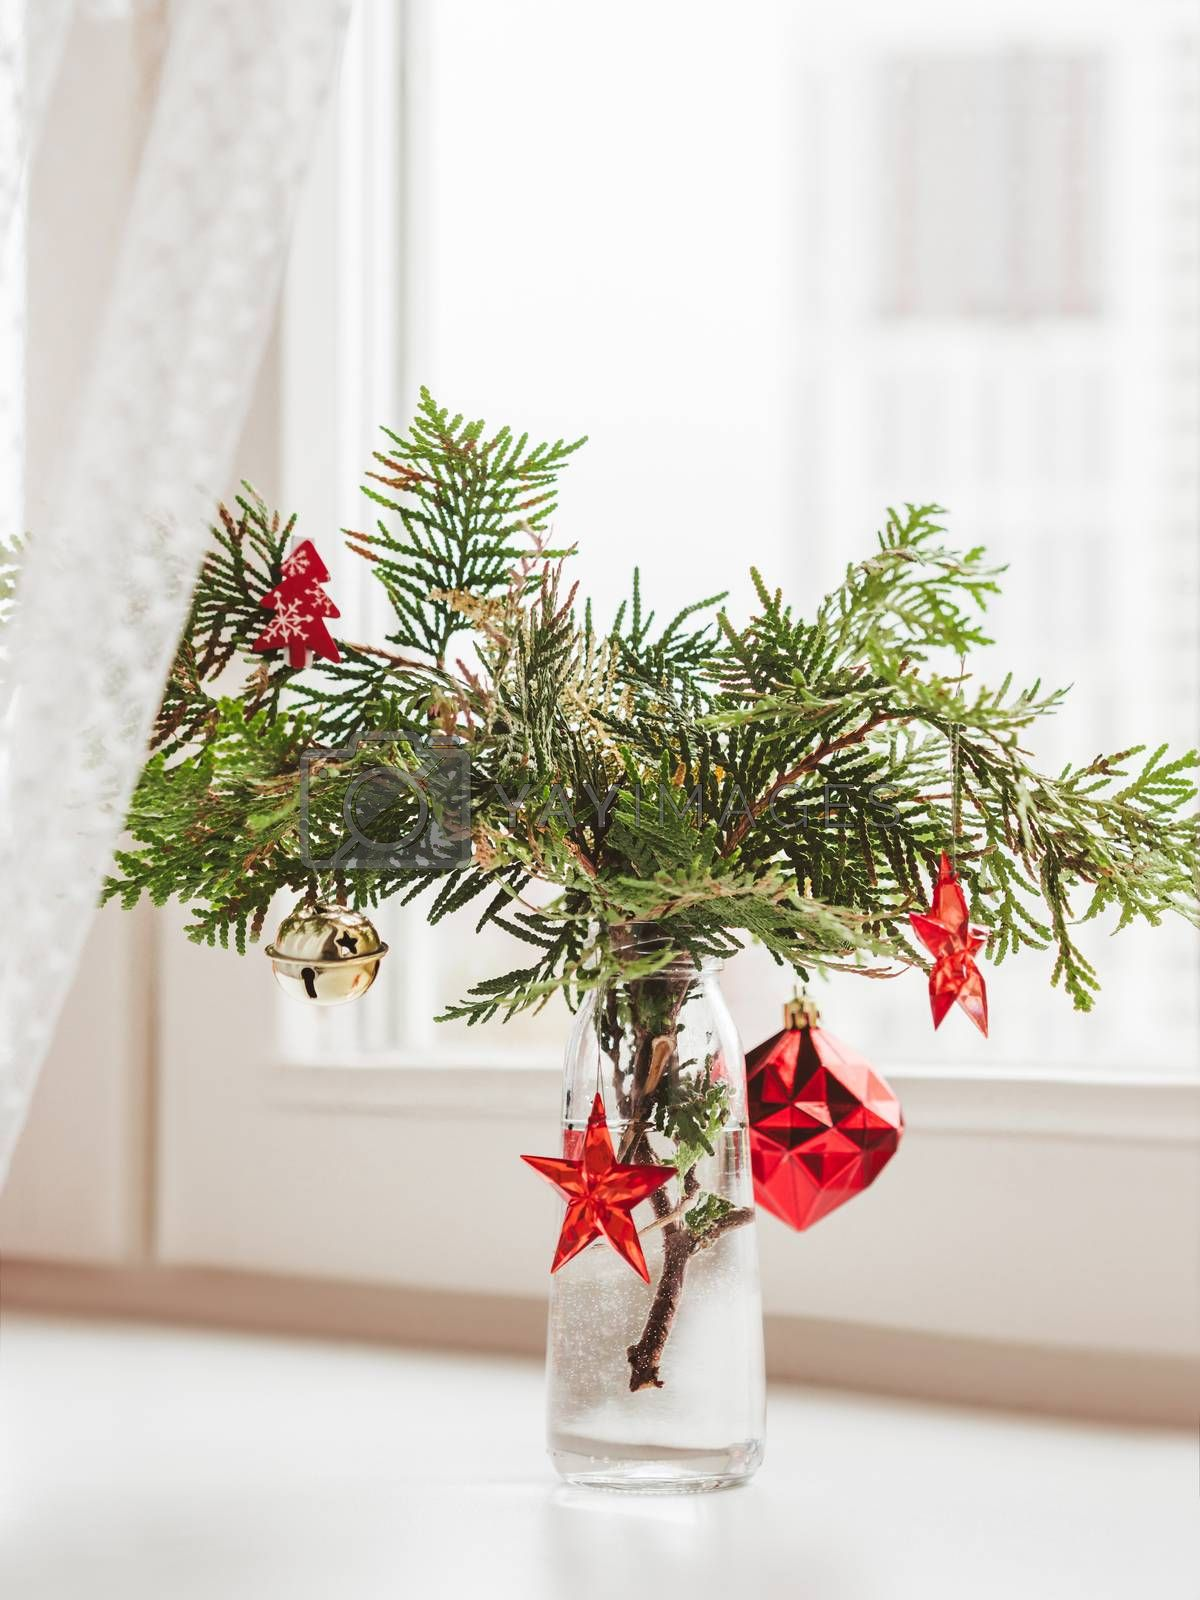 Vase with decorated thuja branches stands on window sill. Sustainable alternative for Christmas tree. Caring for nature. Refusal to cut down spruce forests. New Year celebration.